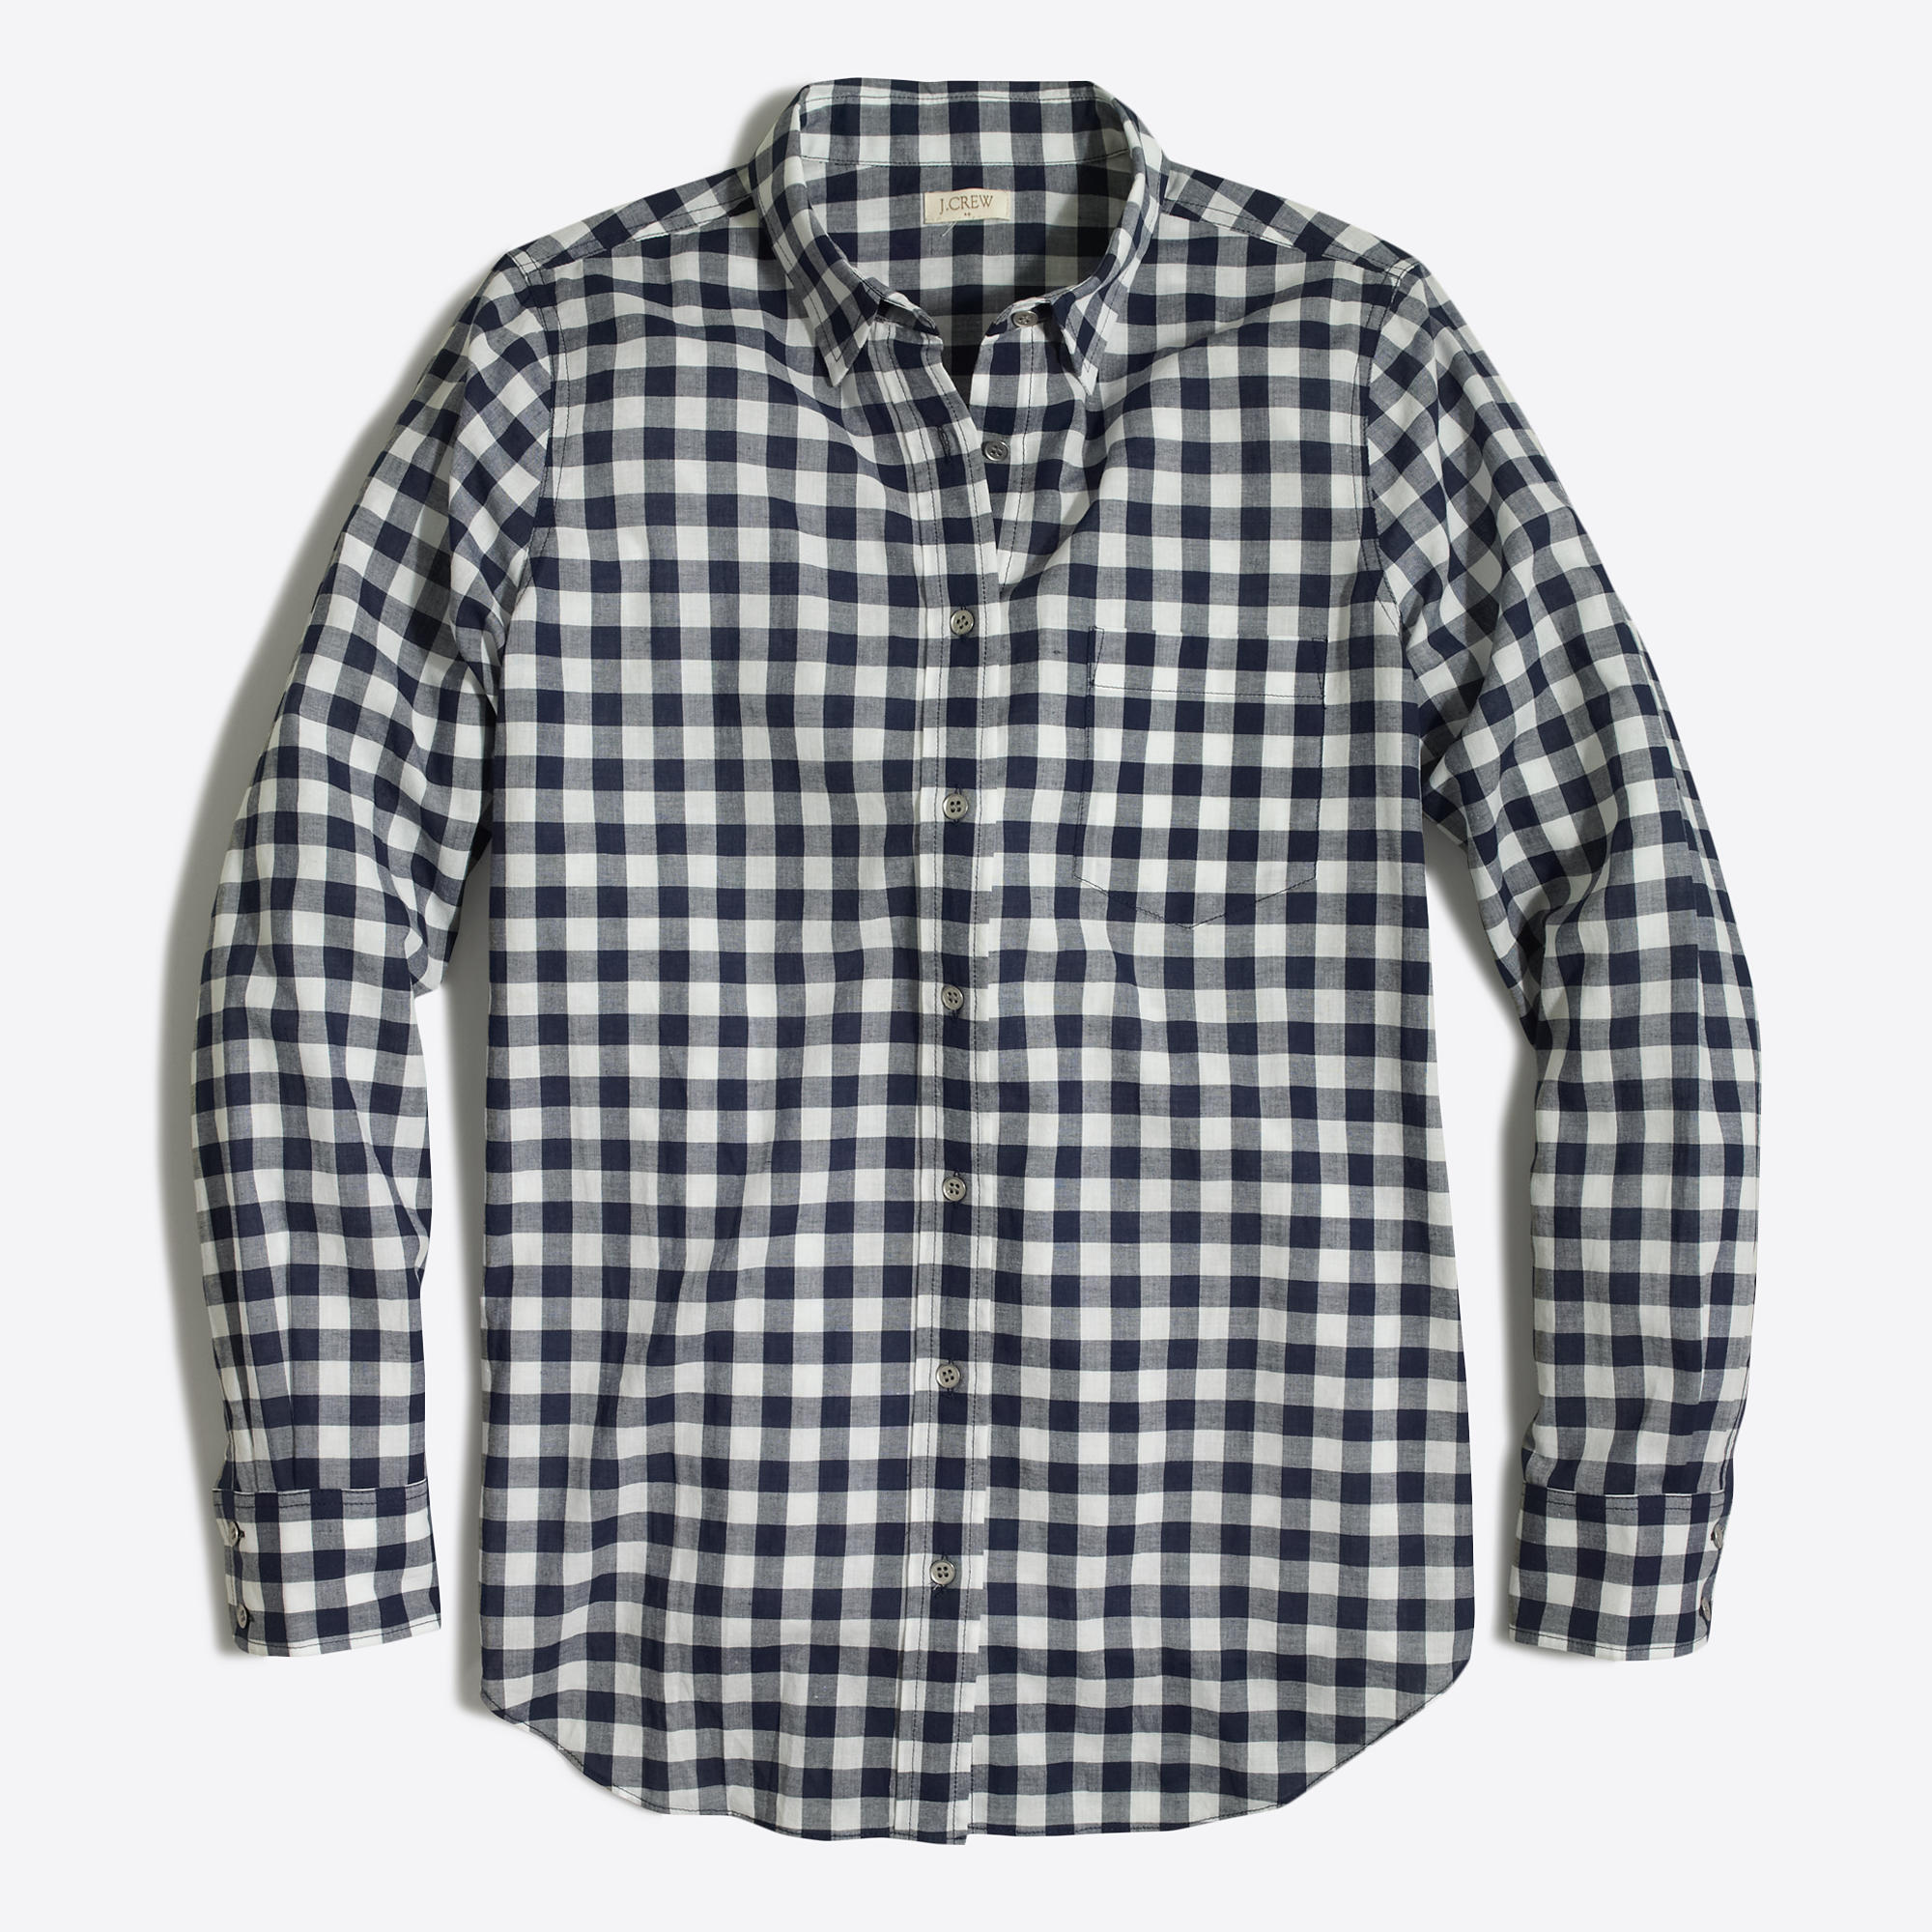 Women's Shirts : Button-Ups, Tanks, & Blouses | J.Crew Factory